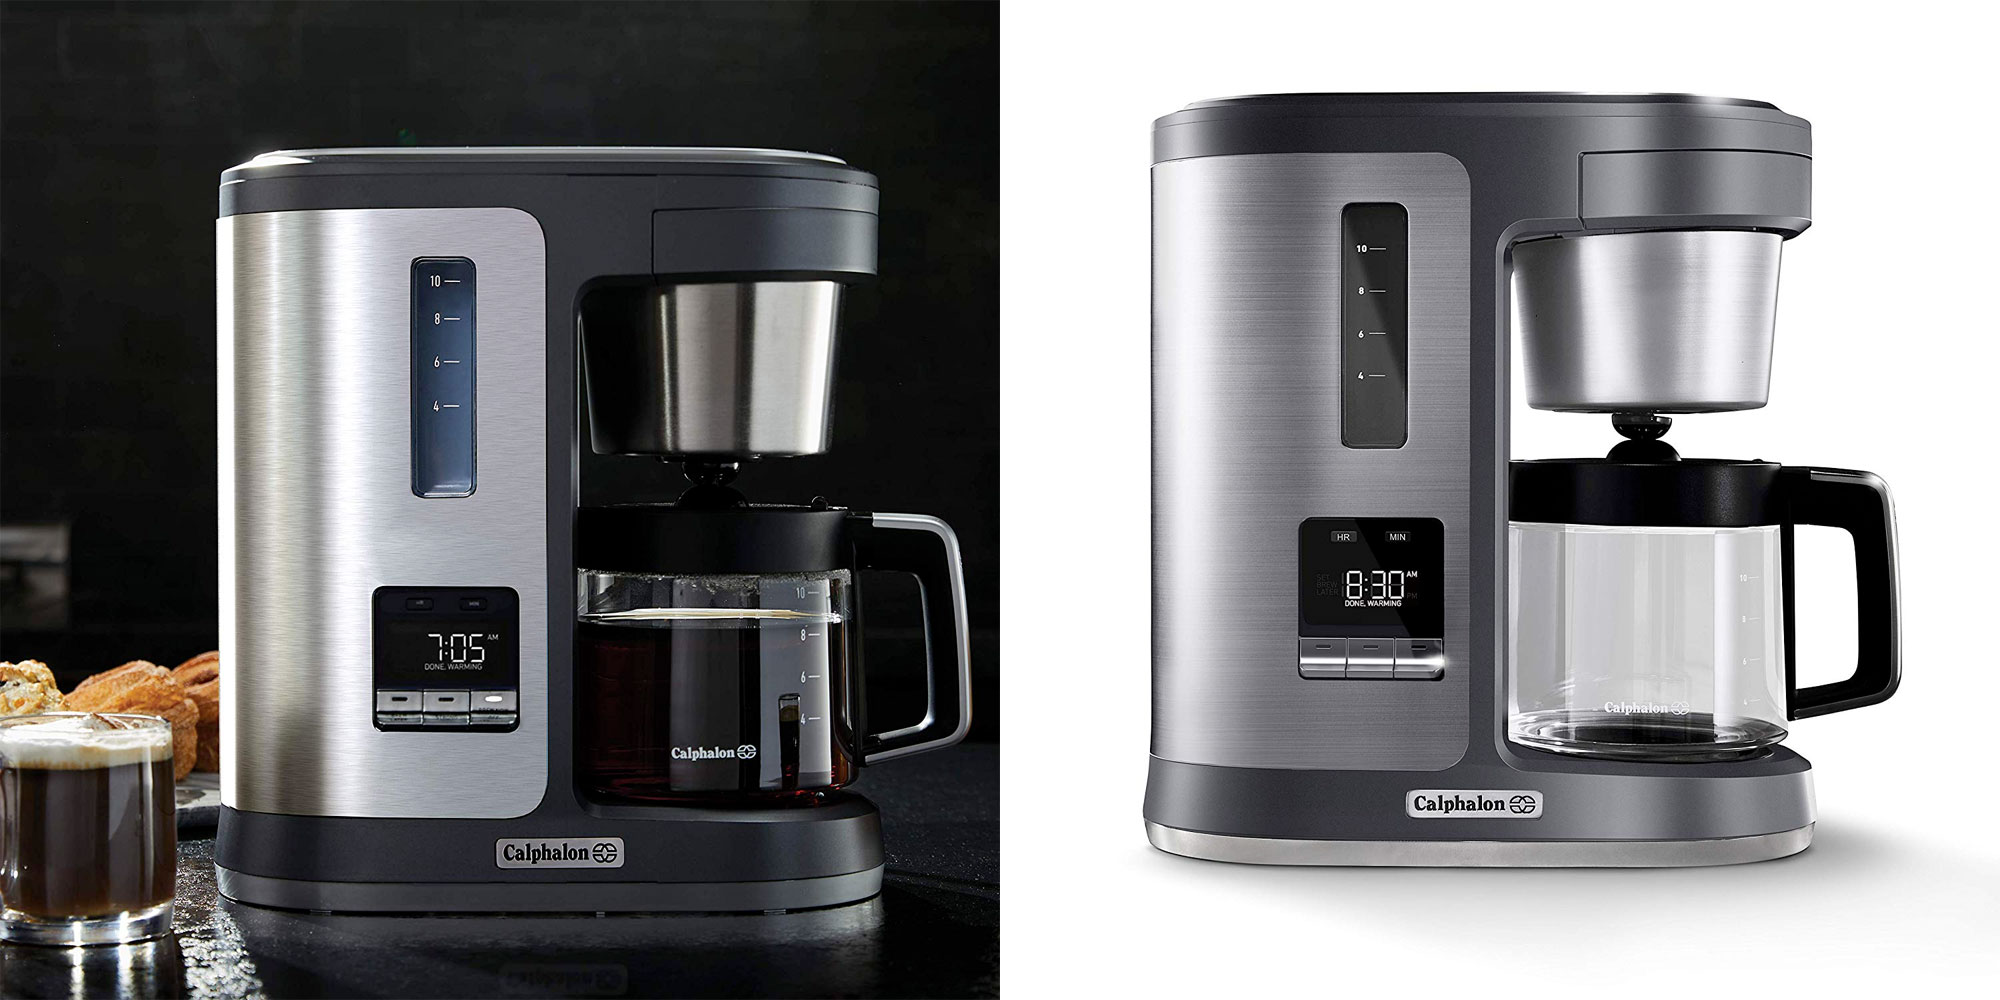 Enjoy the perfect cup of joe w/ Calphalon's special brew coffee maker at $80 (50% off)